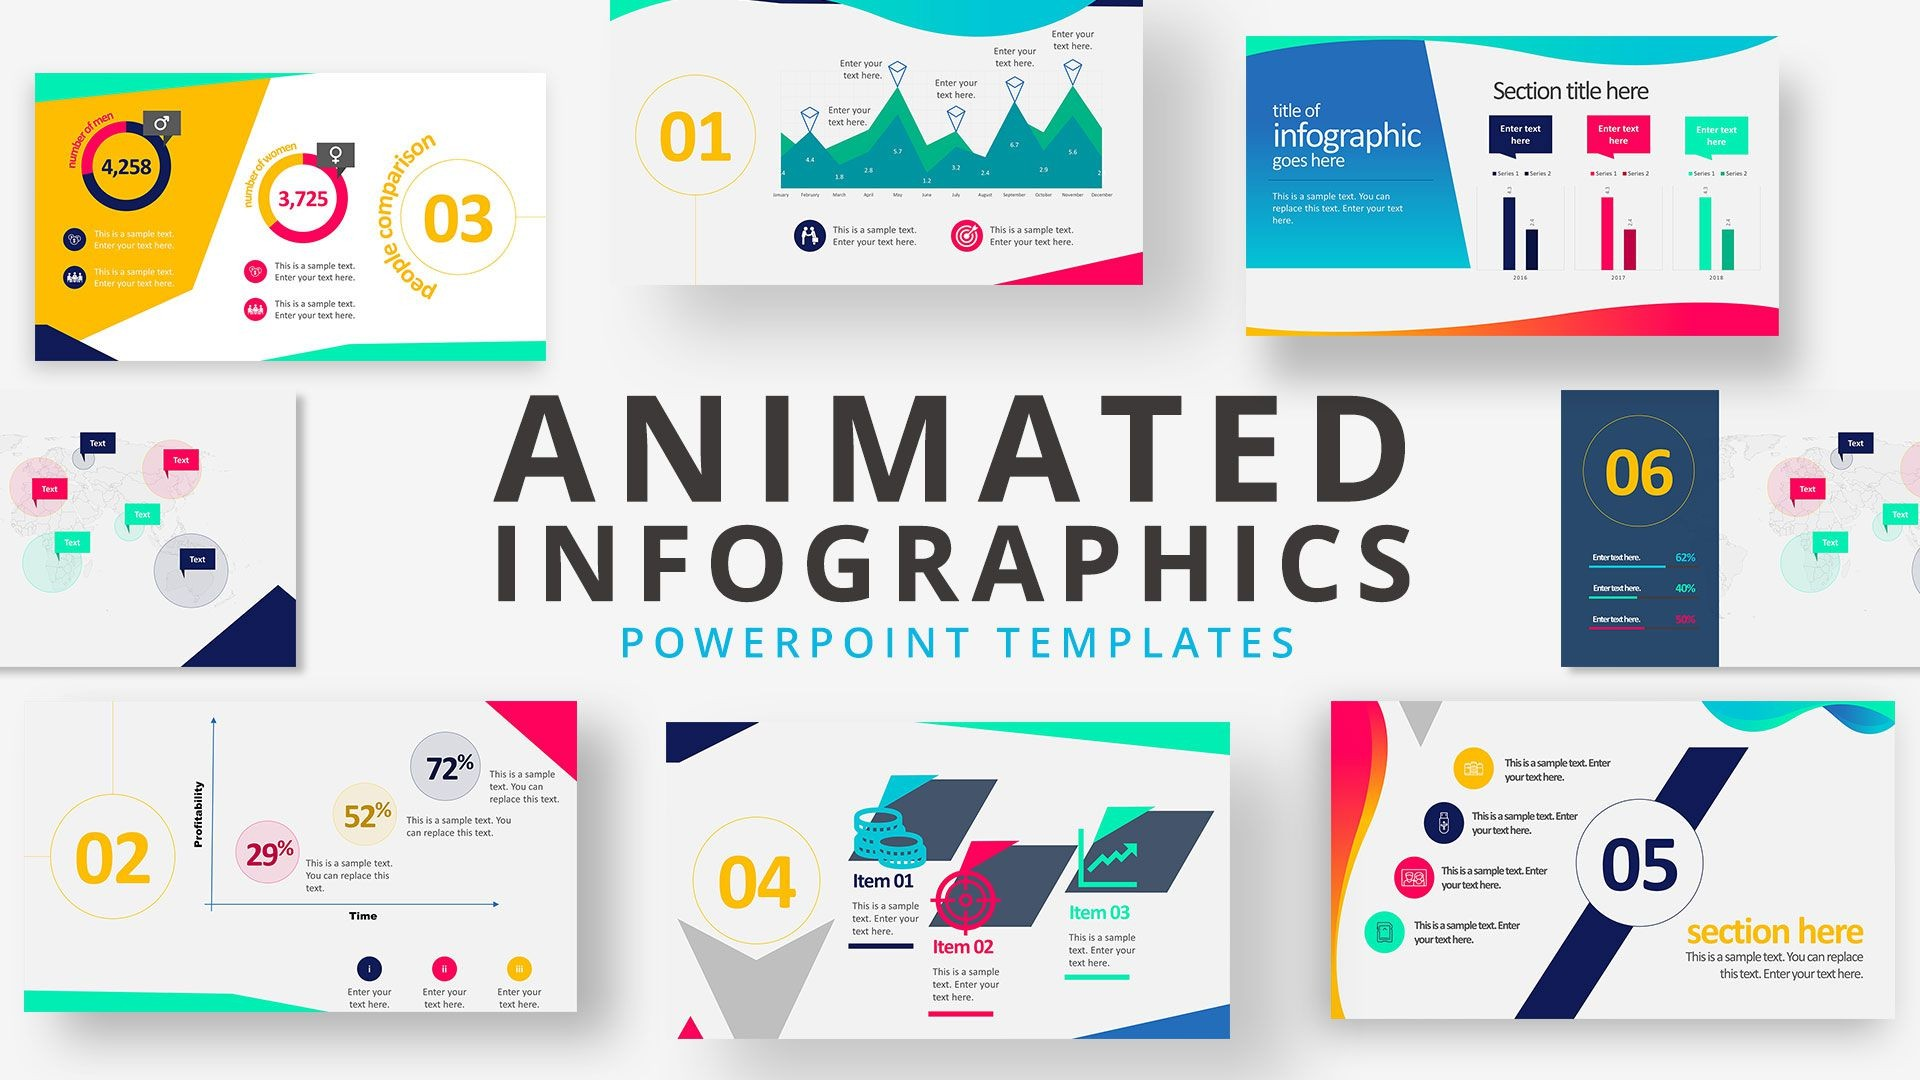 007 Sensational Animation Powerpoint Template Free Download Image  3d Animated 2016 Microsoft 2007 20141920